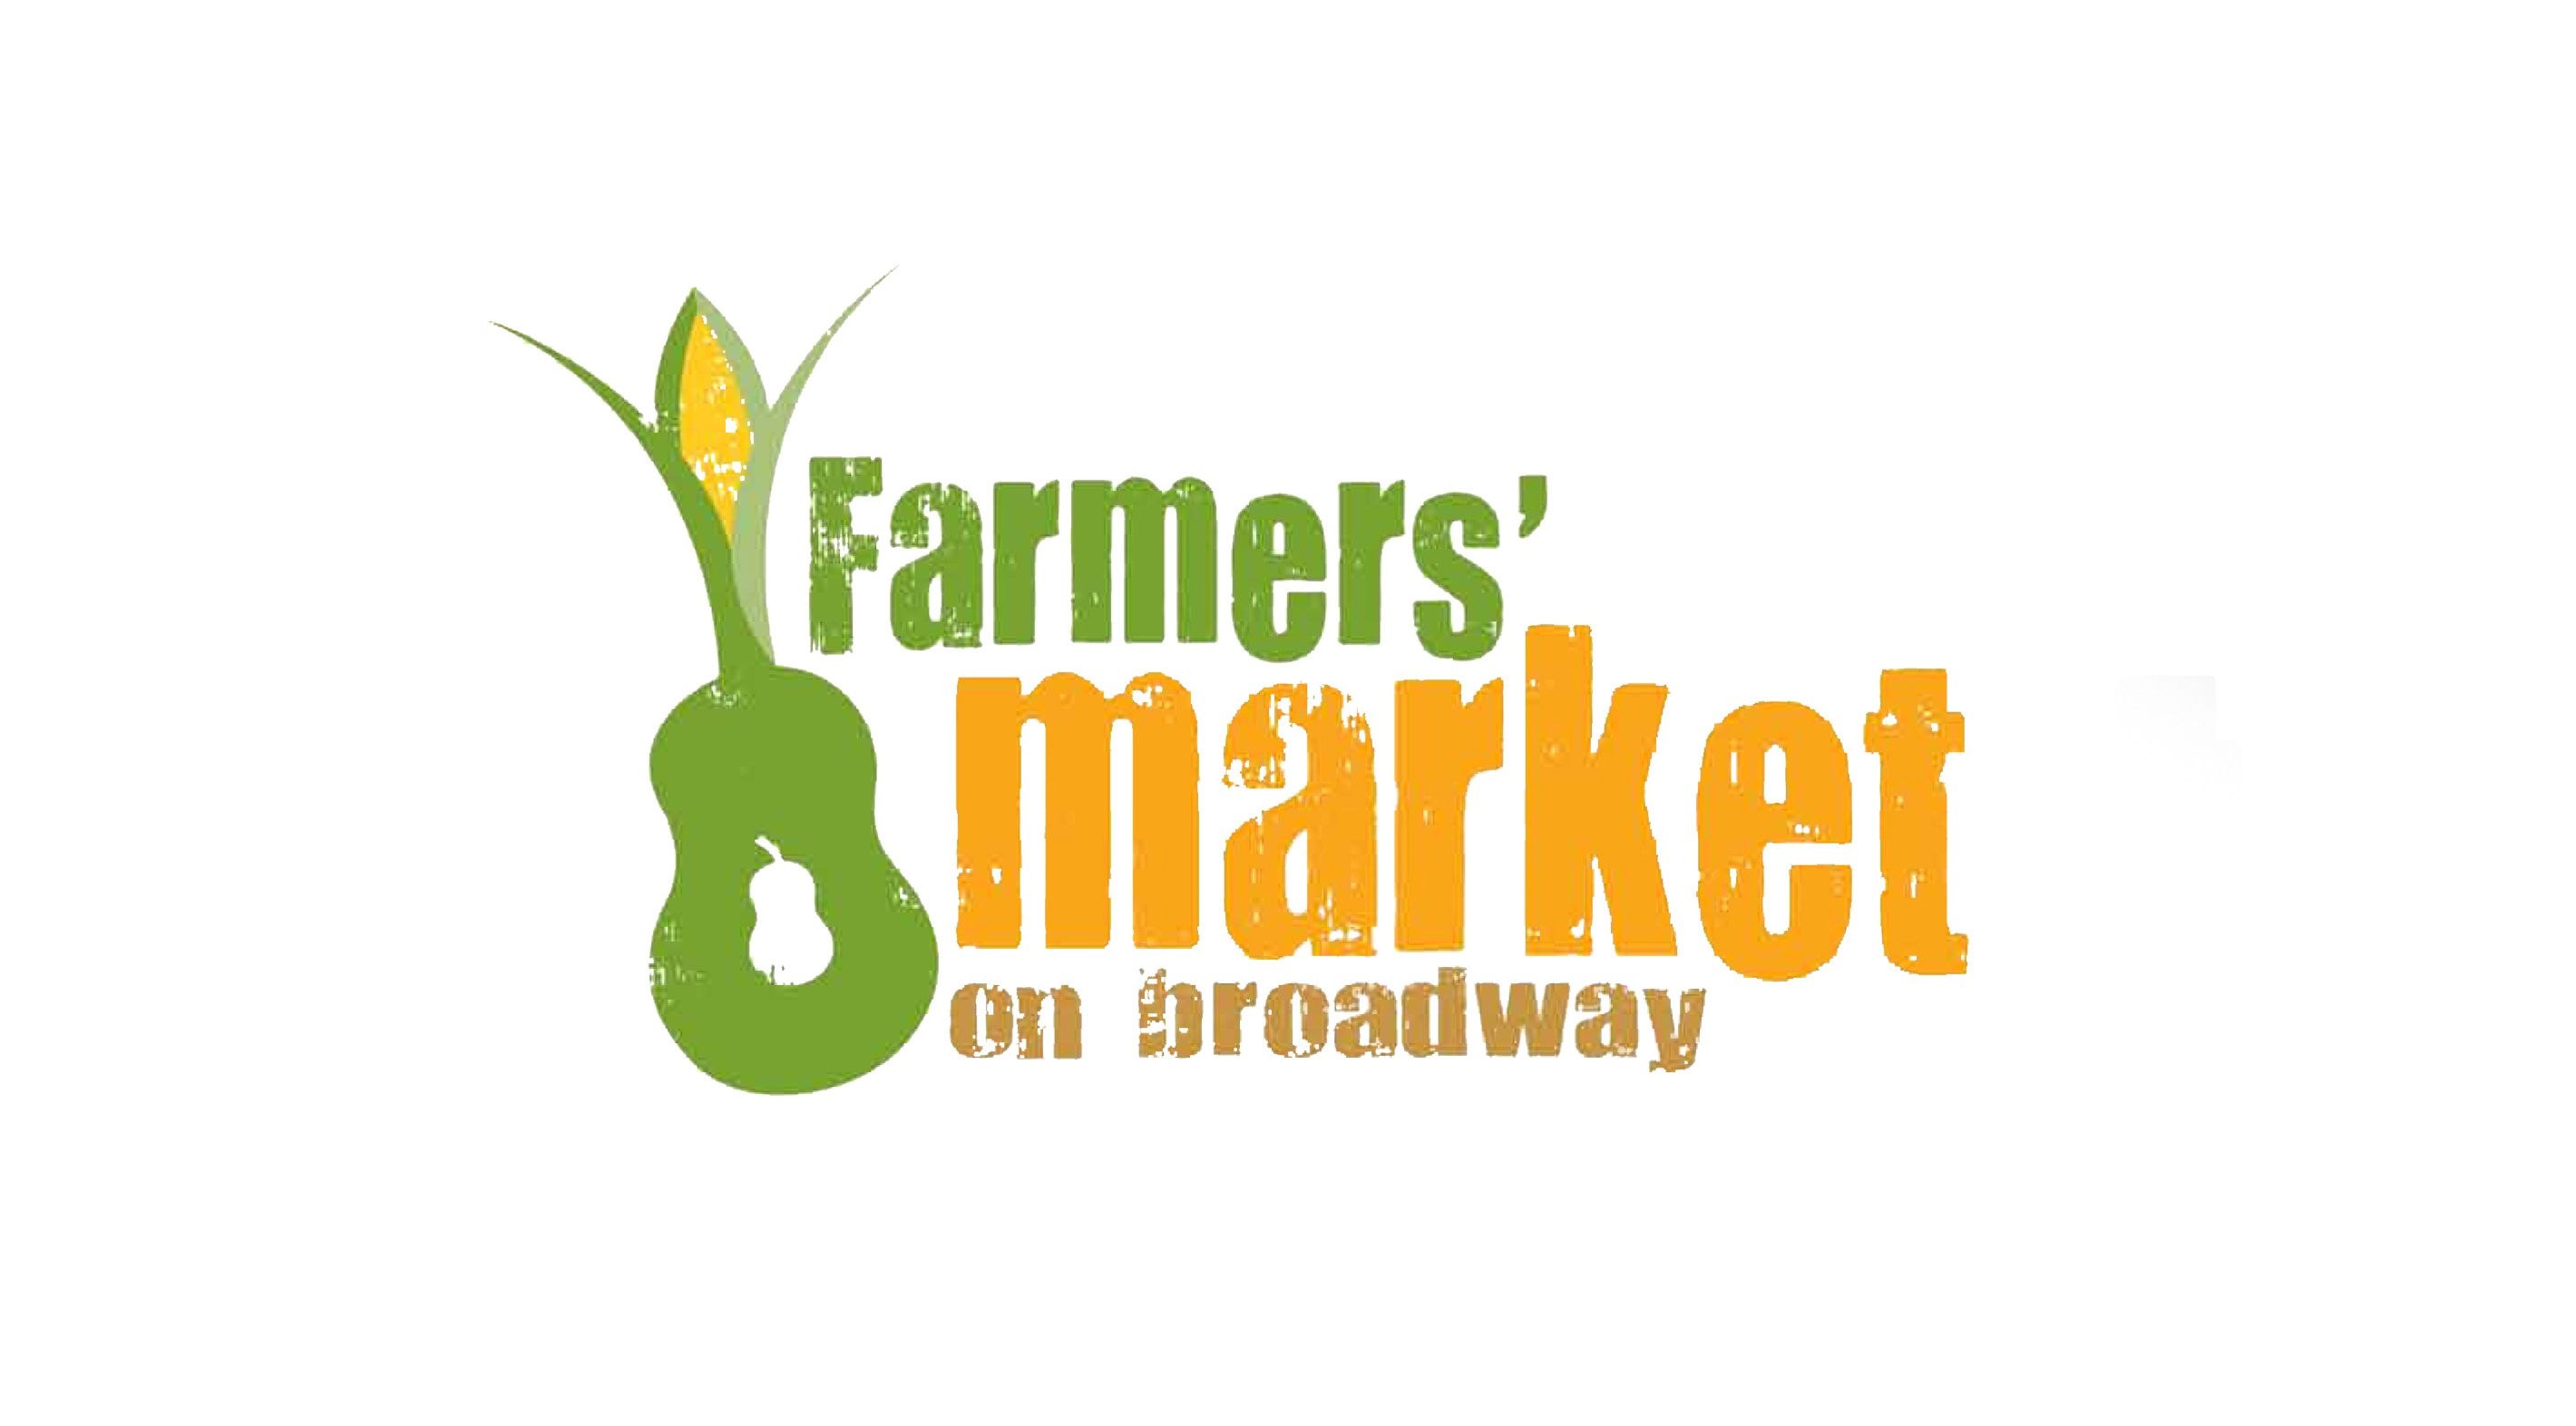 The Star 98 Summer of Backyard and Beyond takes us to The Farmers Market on Broadway!